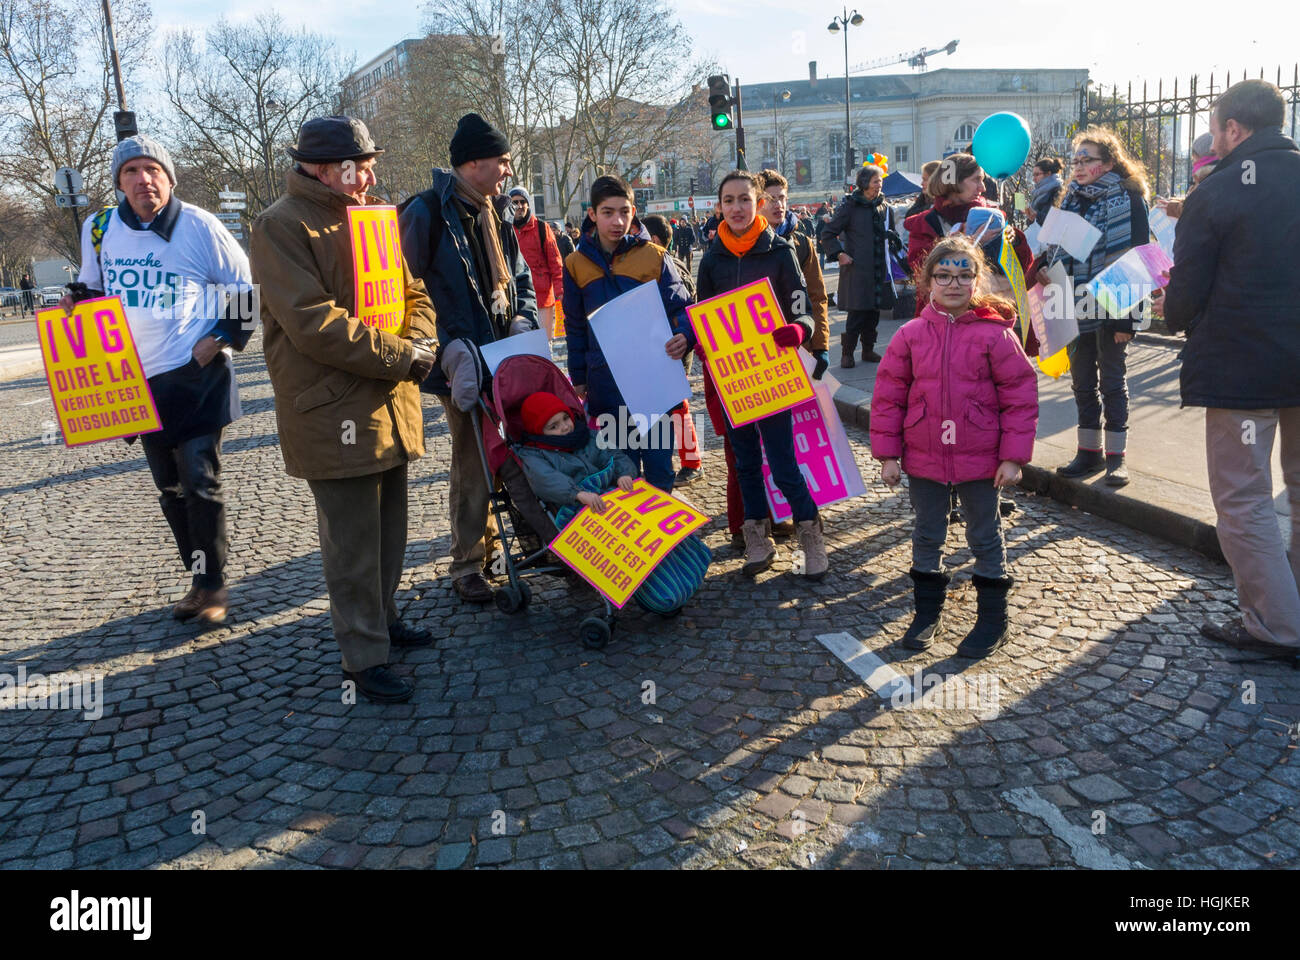 Crowd of French People, Marching in Protest Against Legal Abortion, 'Marche Pour la Vie' Protests     'Tens - Stock Image